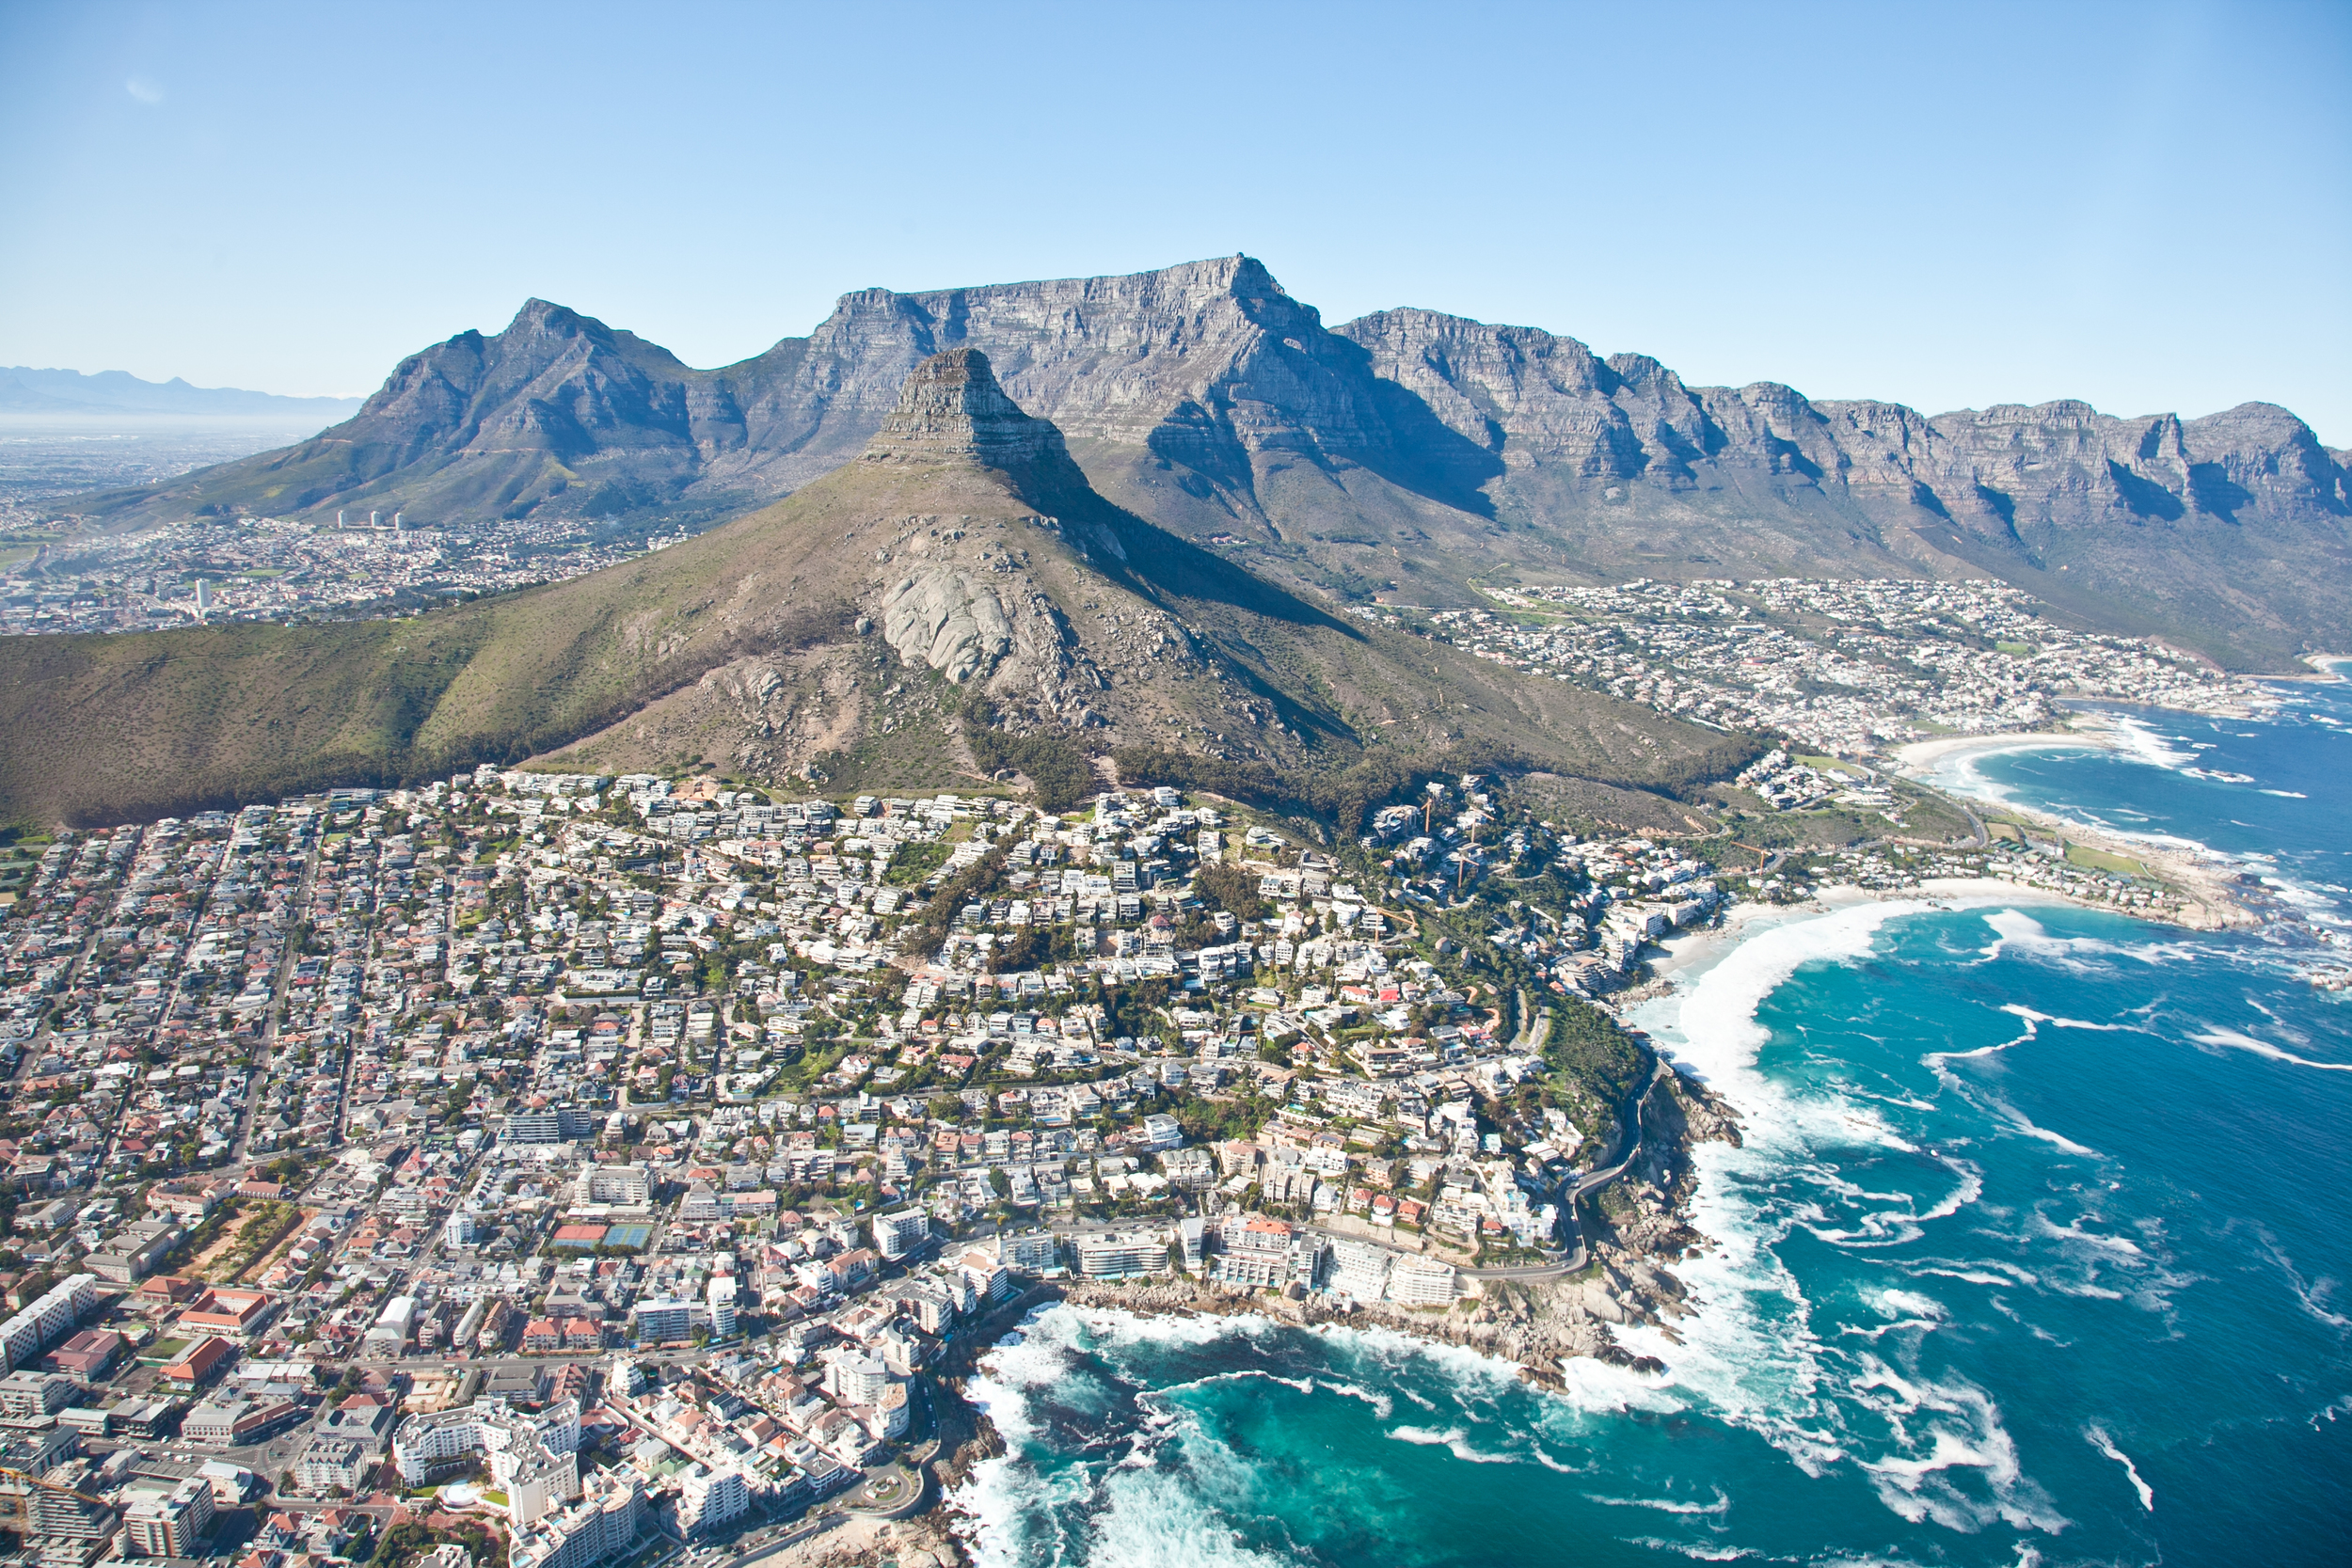 IMG_4826-cape-town-south-africa-helicopter-ride-trisa-taro.jpg